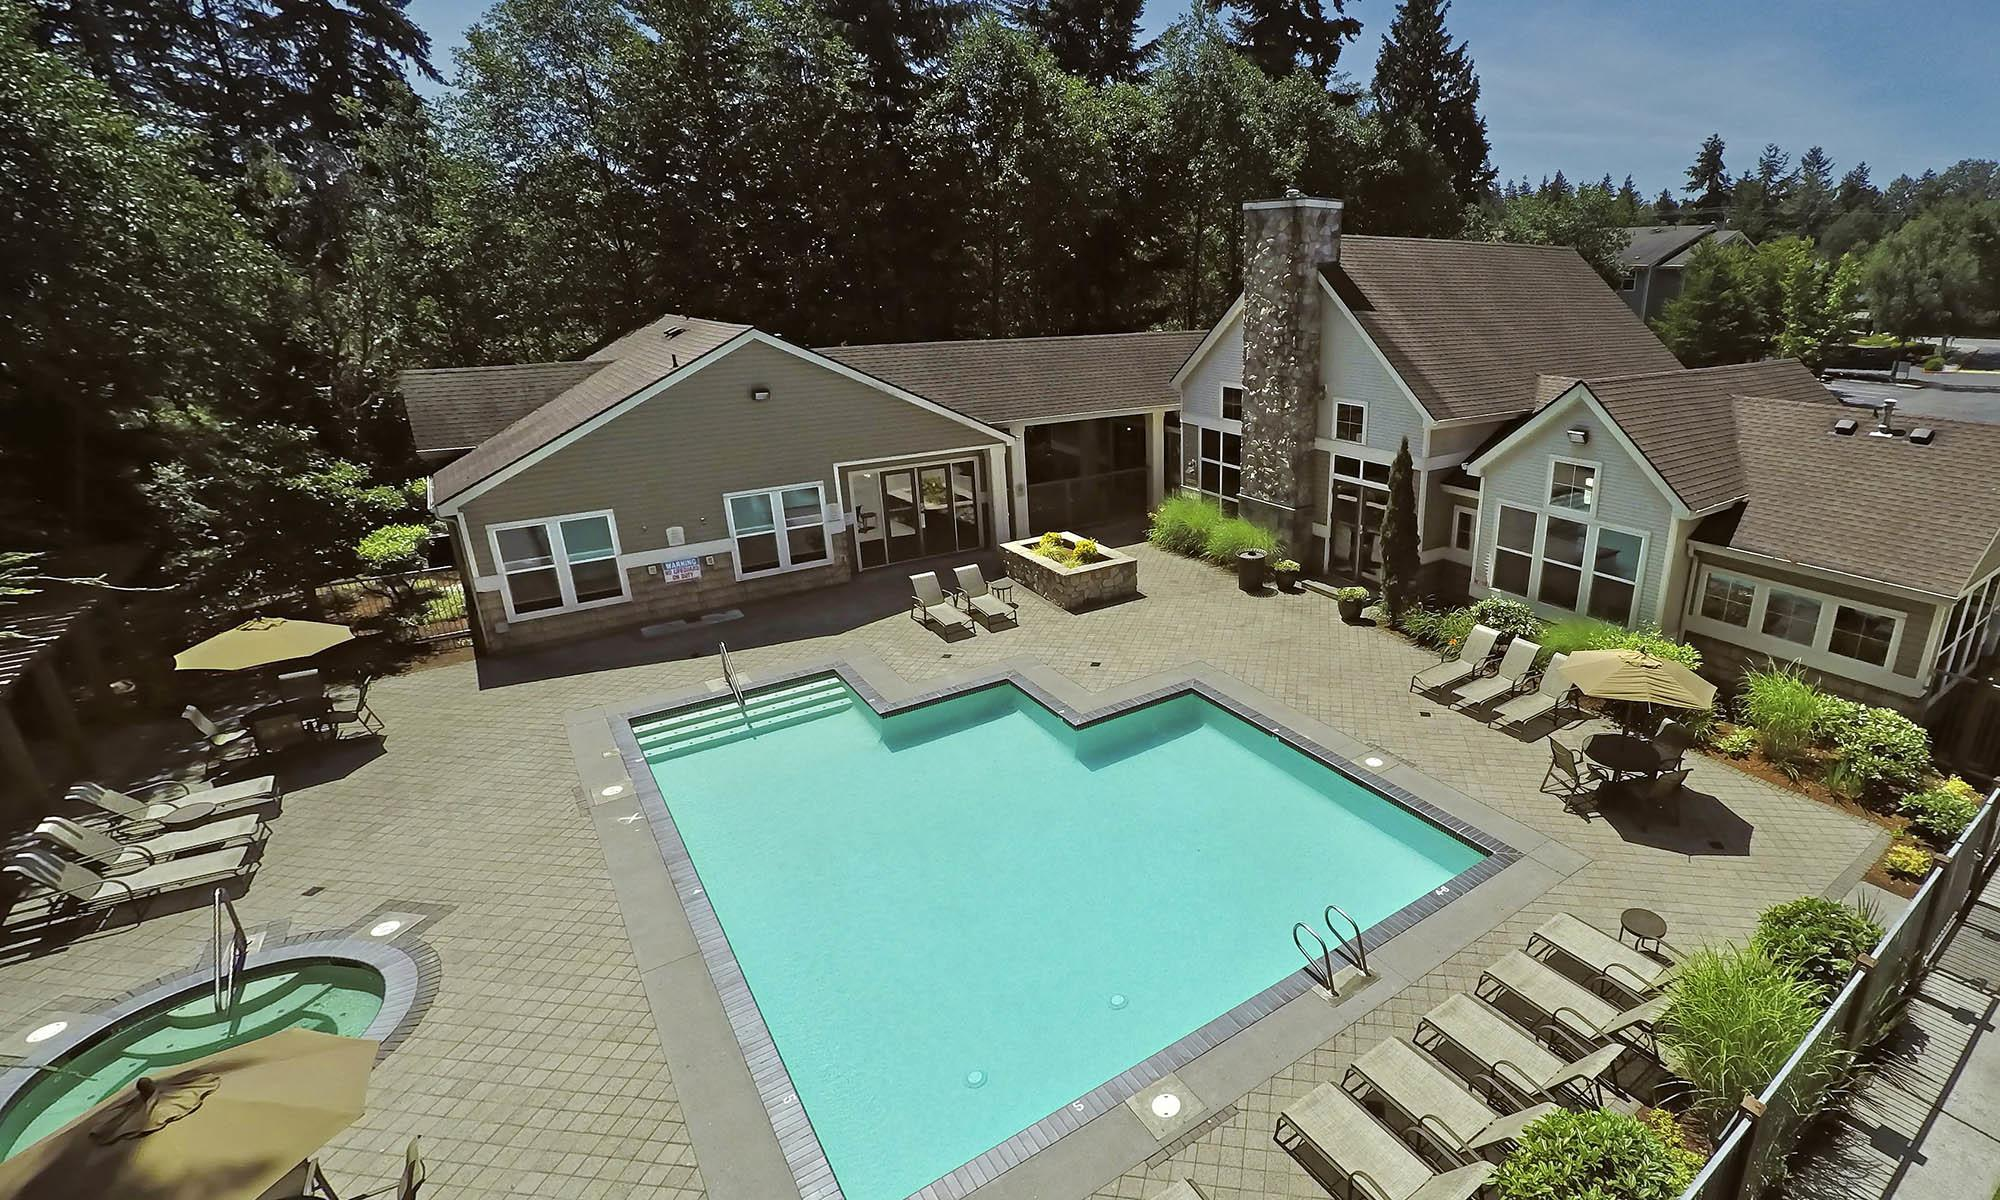 Everett wa apartments for rent wildreed apartments - One bedroom apartments everett wa ...